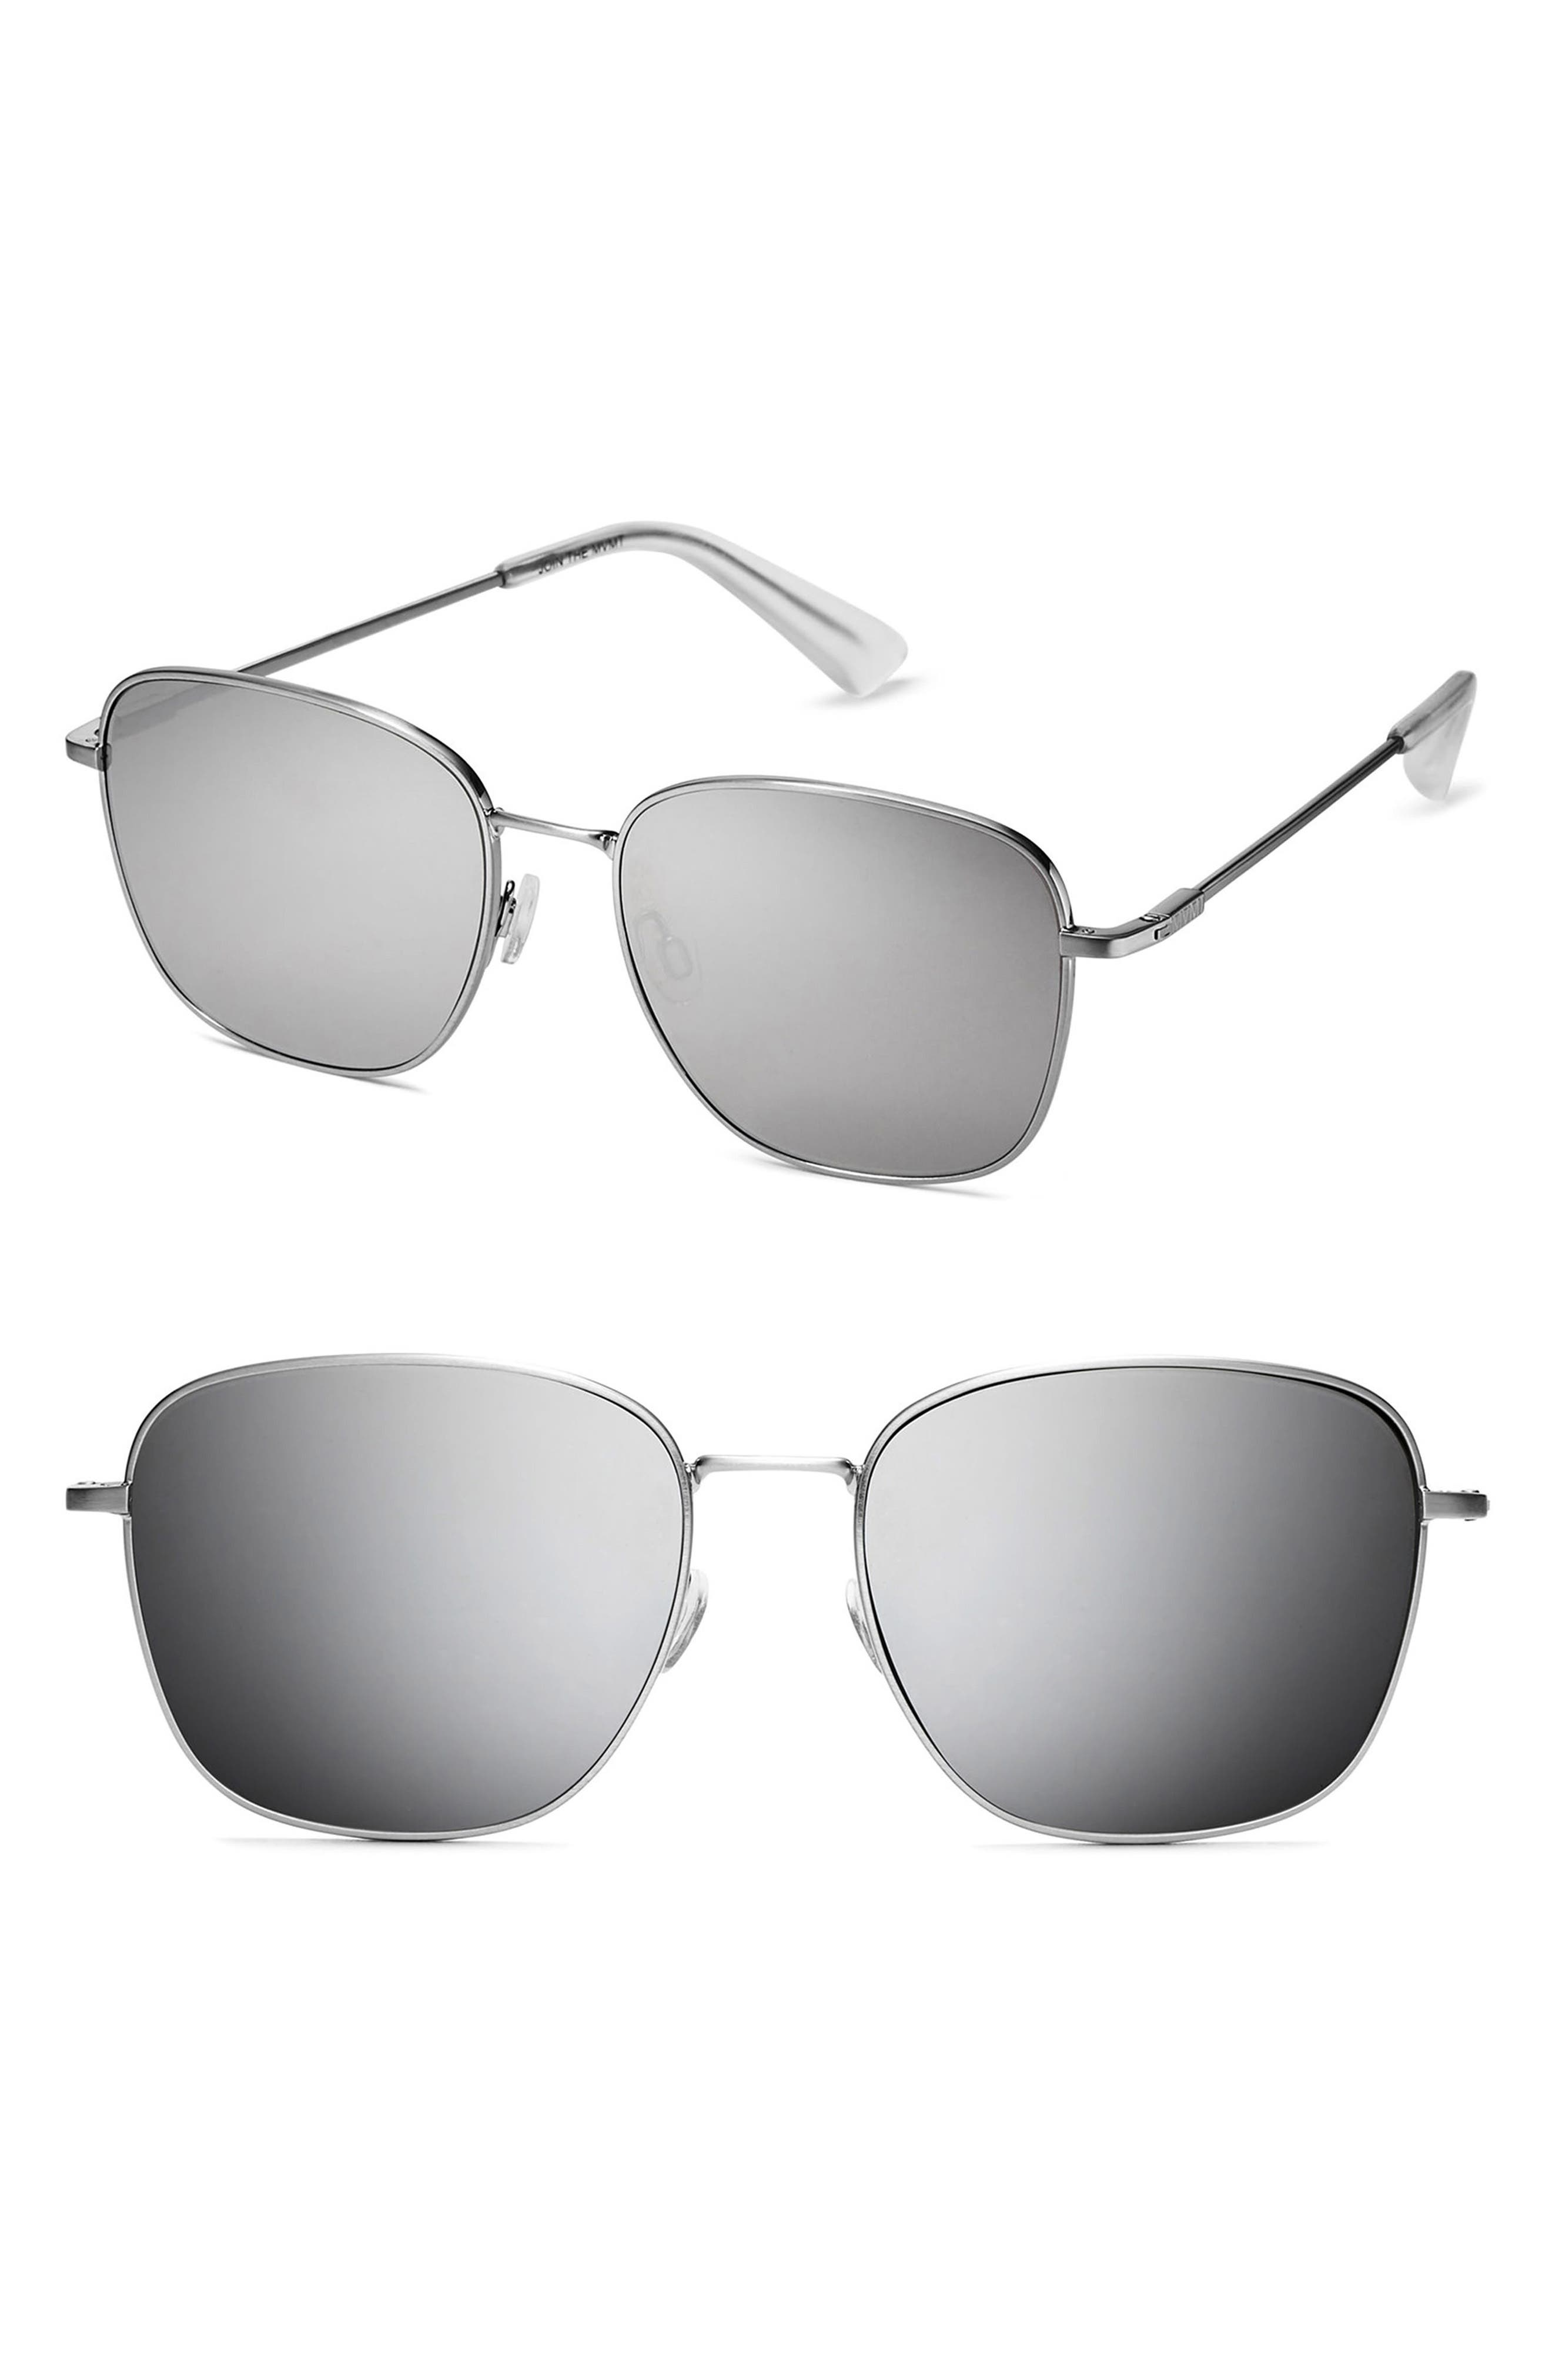 MVMT OUTLAW 55MM POLARIZED SUNGLASSES - SILVER MIRROR